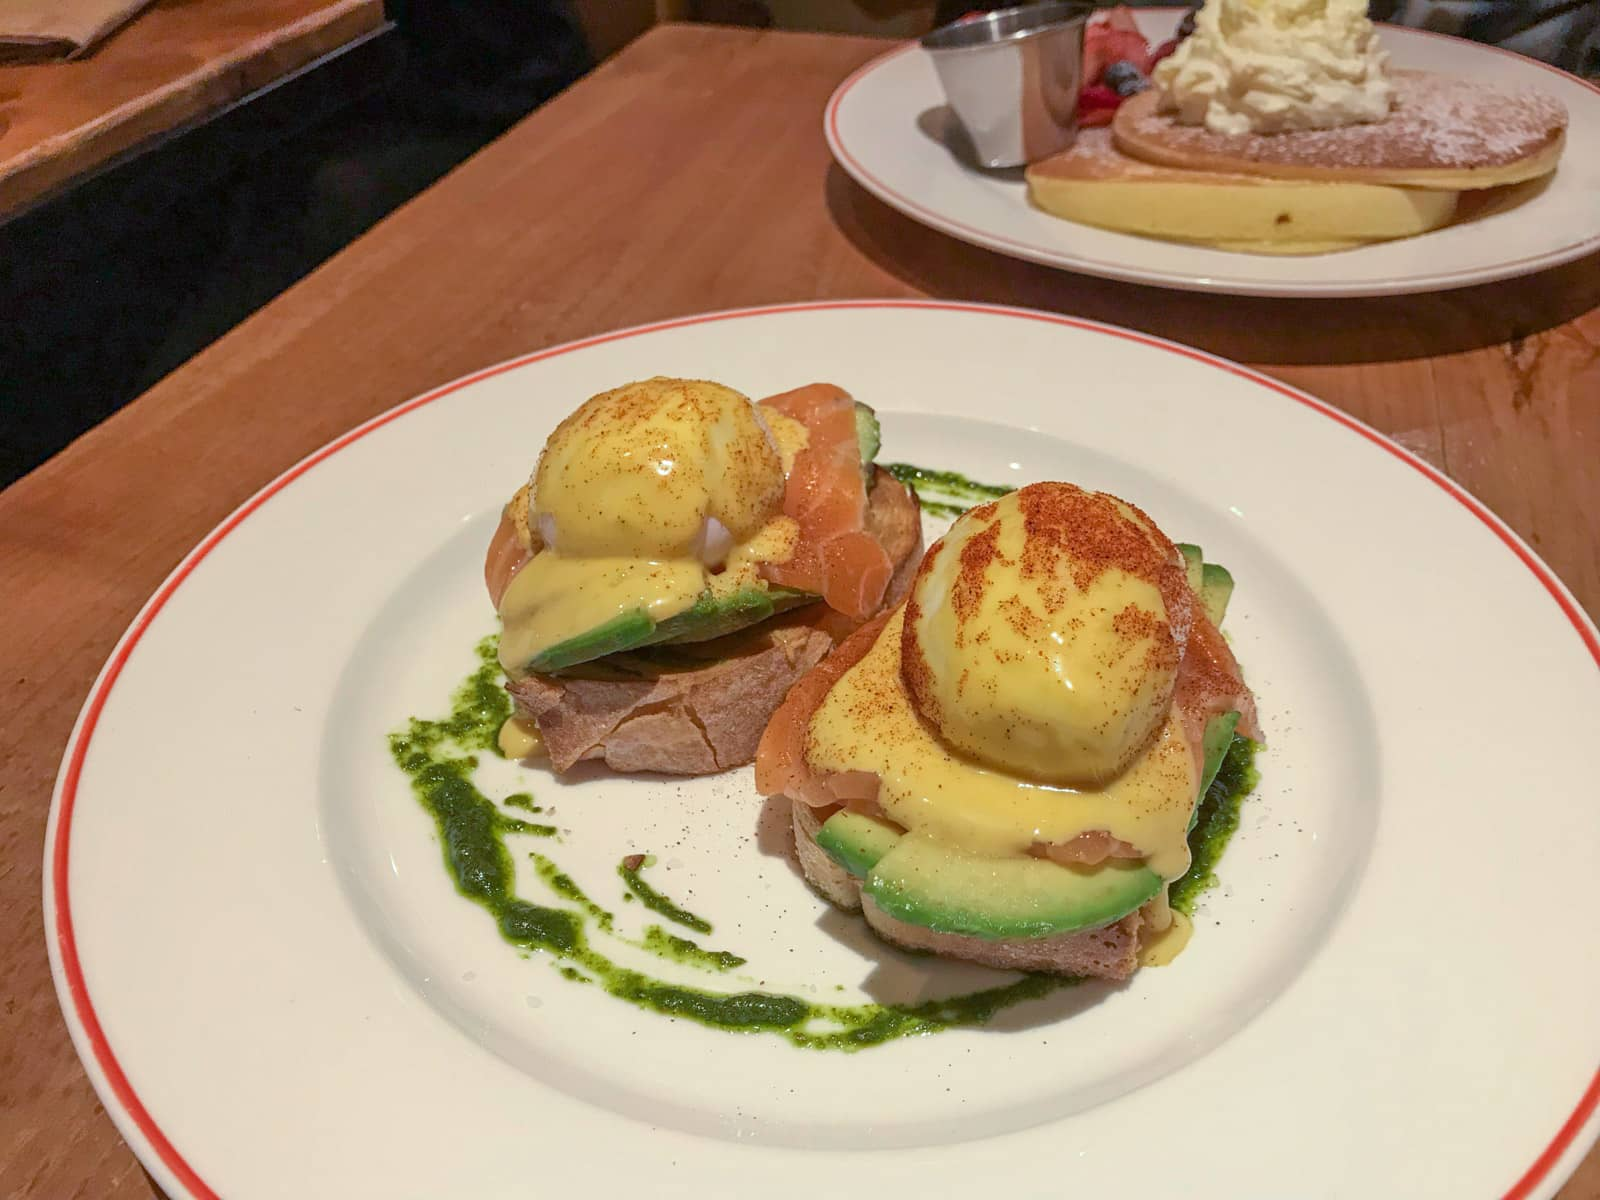 Salmon eggs benedict served on a plate (poached egg with hollandaise sauce, with smoked salmon and avocado on toast)